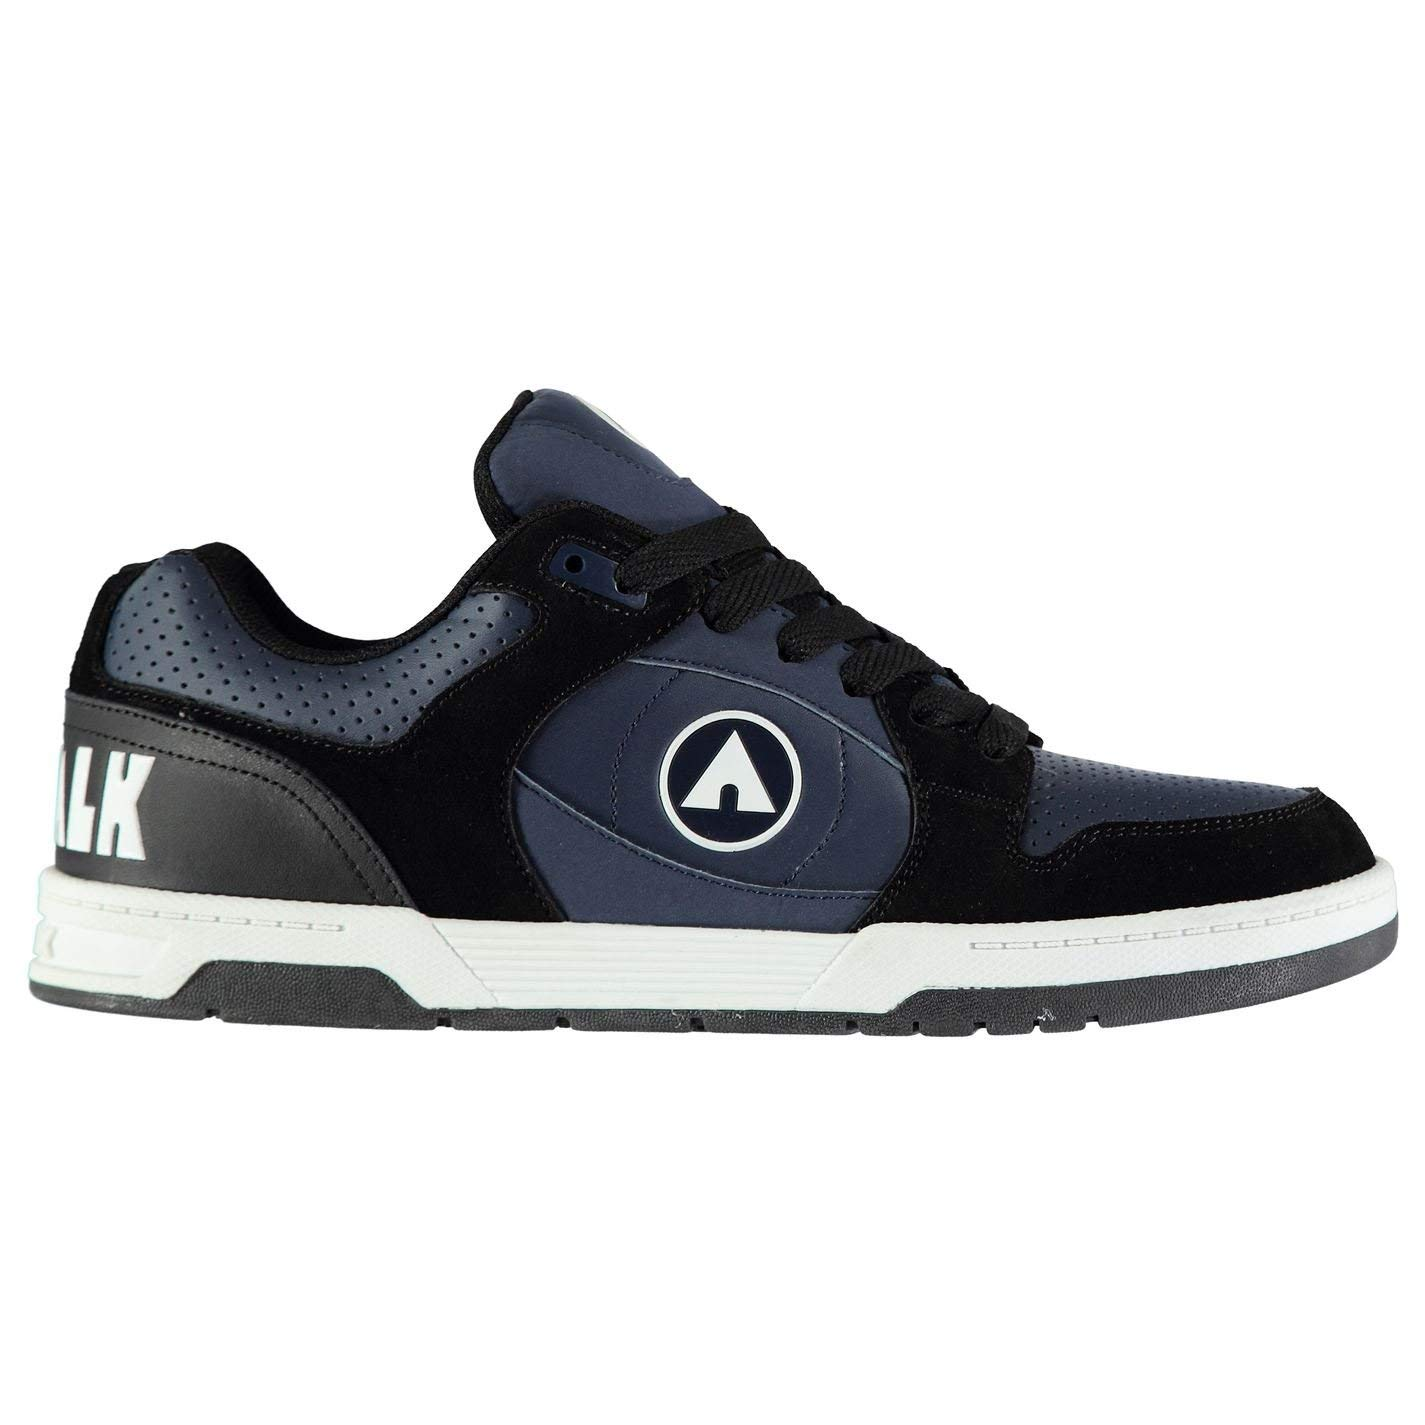 115c7688ef3a1 Get Quotations · Airwalk Mens Throttle Skate Shoes Lace up